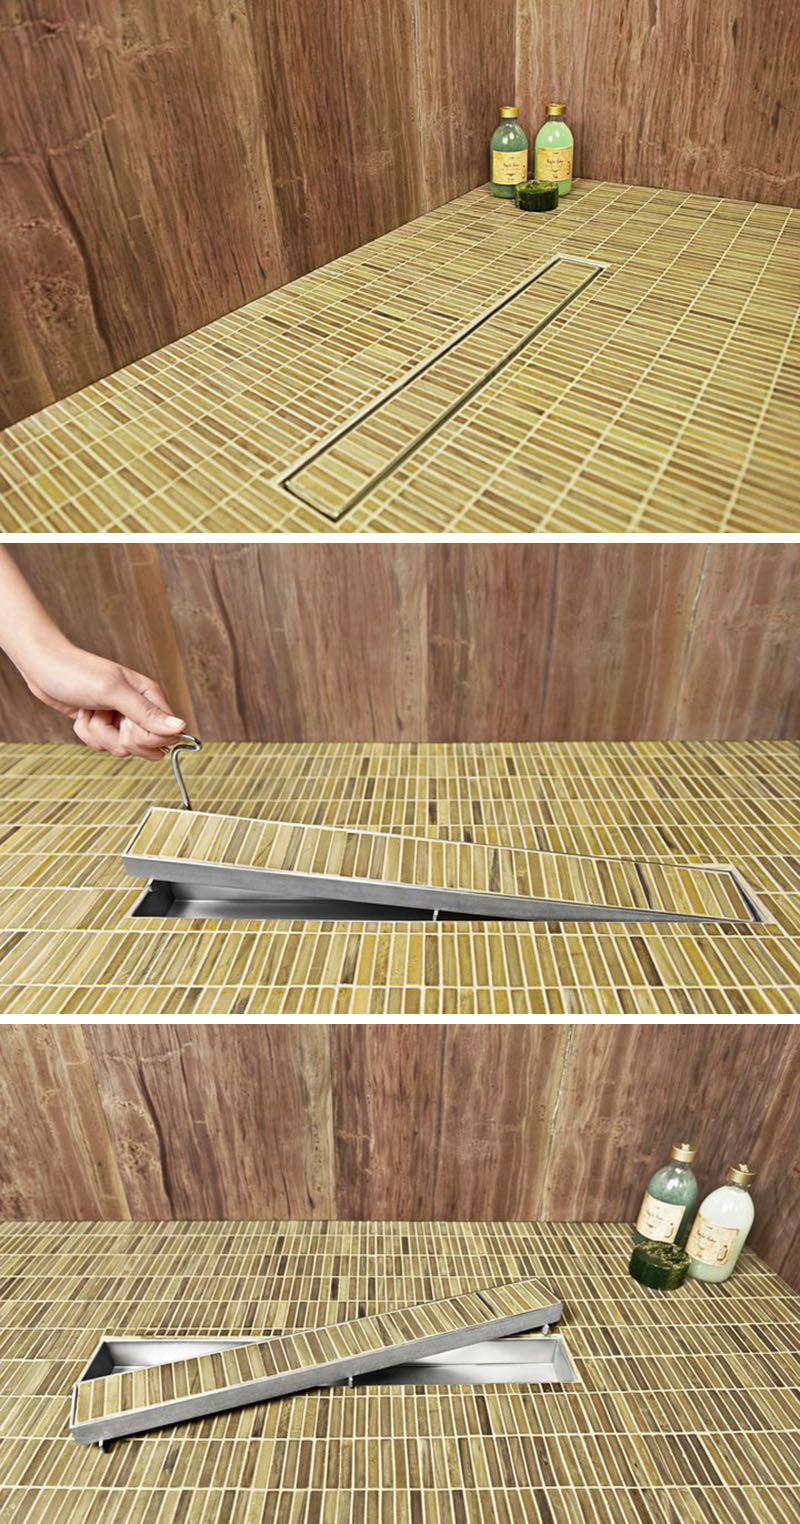 Another Benefit Of Linear Drains Is The Ease Of Which They Can Be Cleaned.  Traditional Shower Drains Can Be A Pain To Clean, However With Linear Drains,  ...